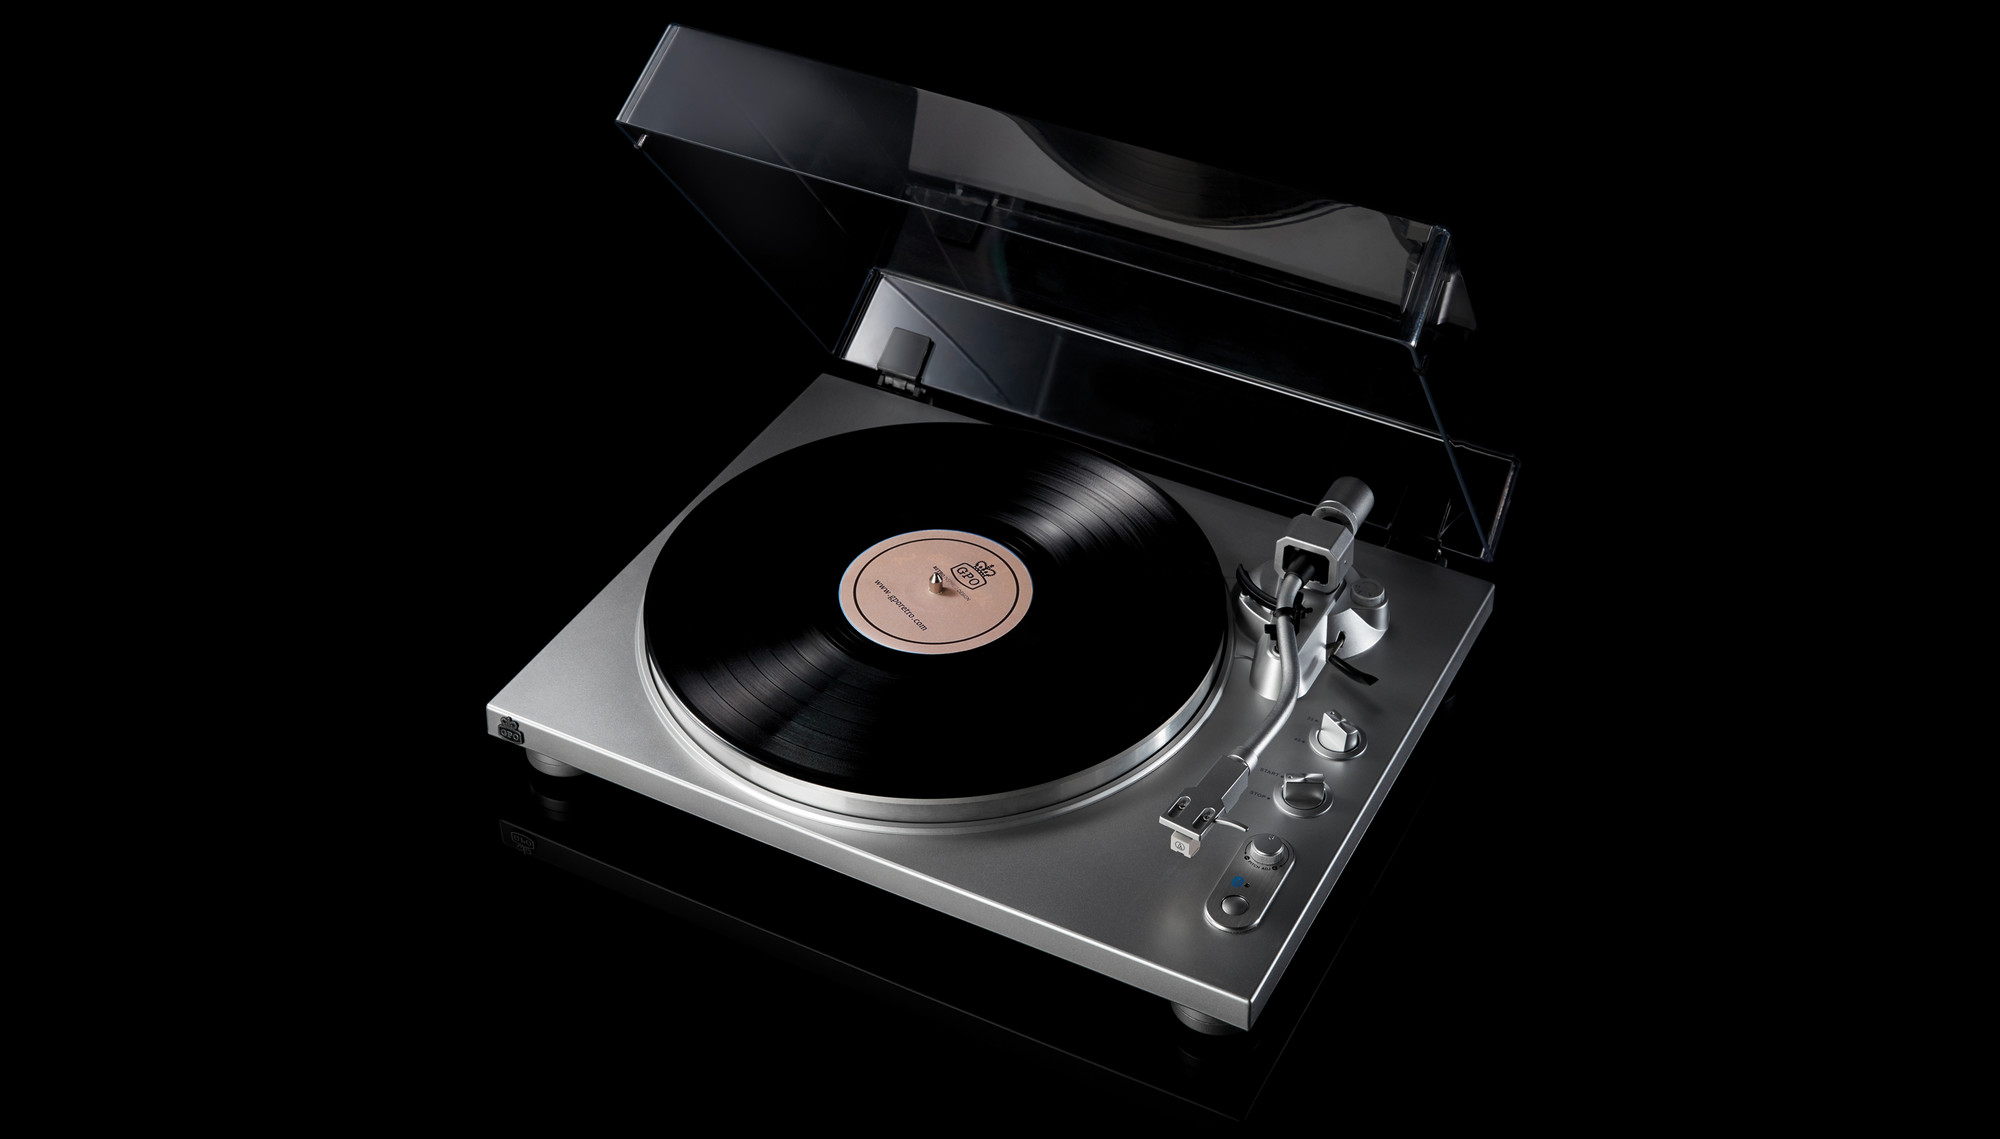 Pitch Control Turntable | Best Fully Automatic Turntable